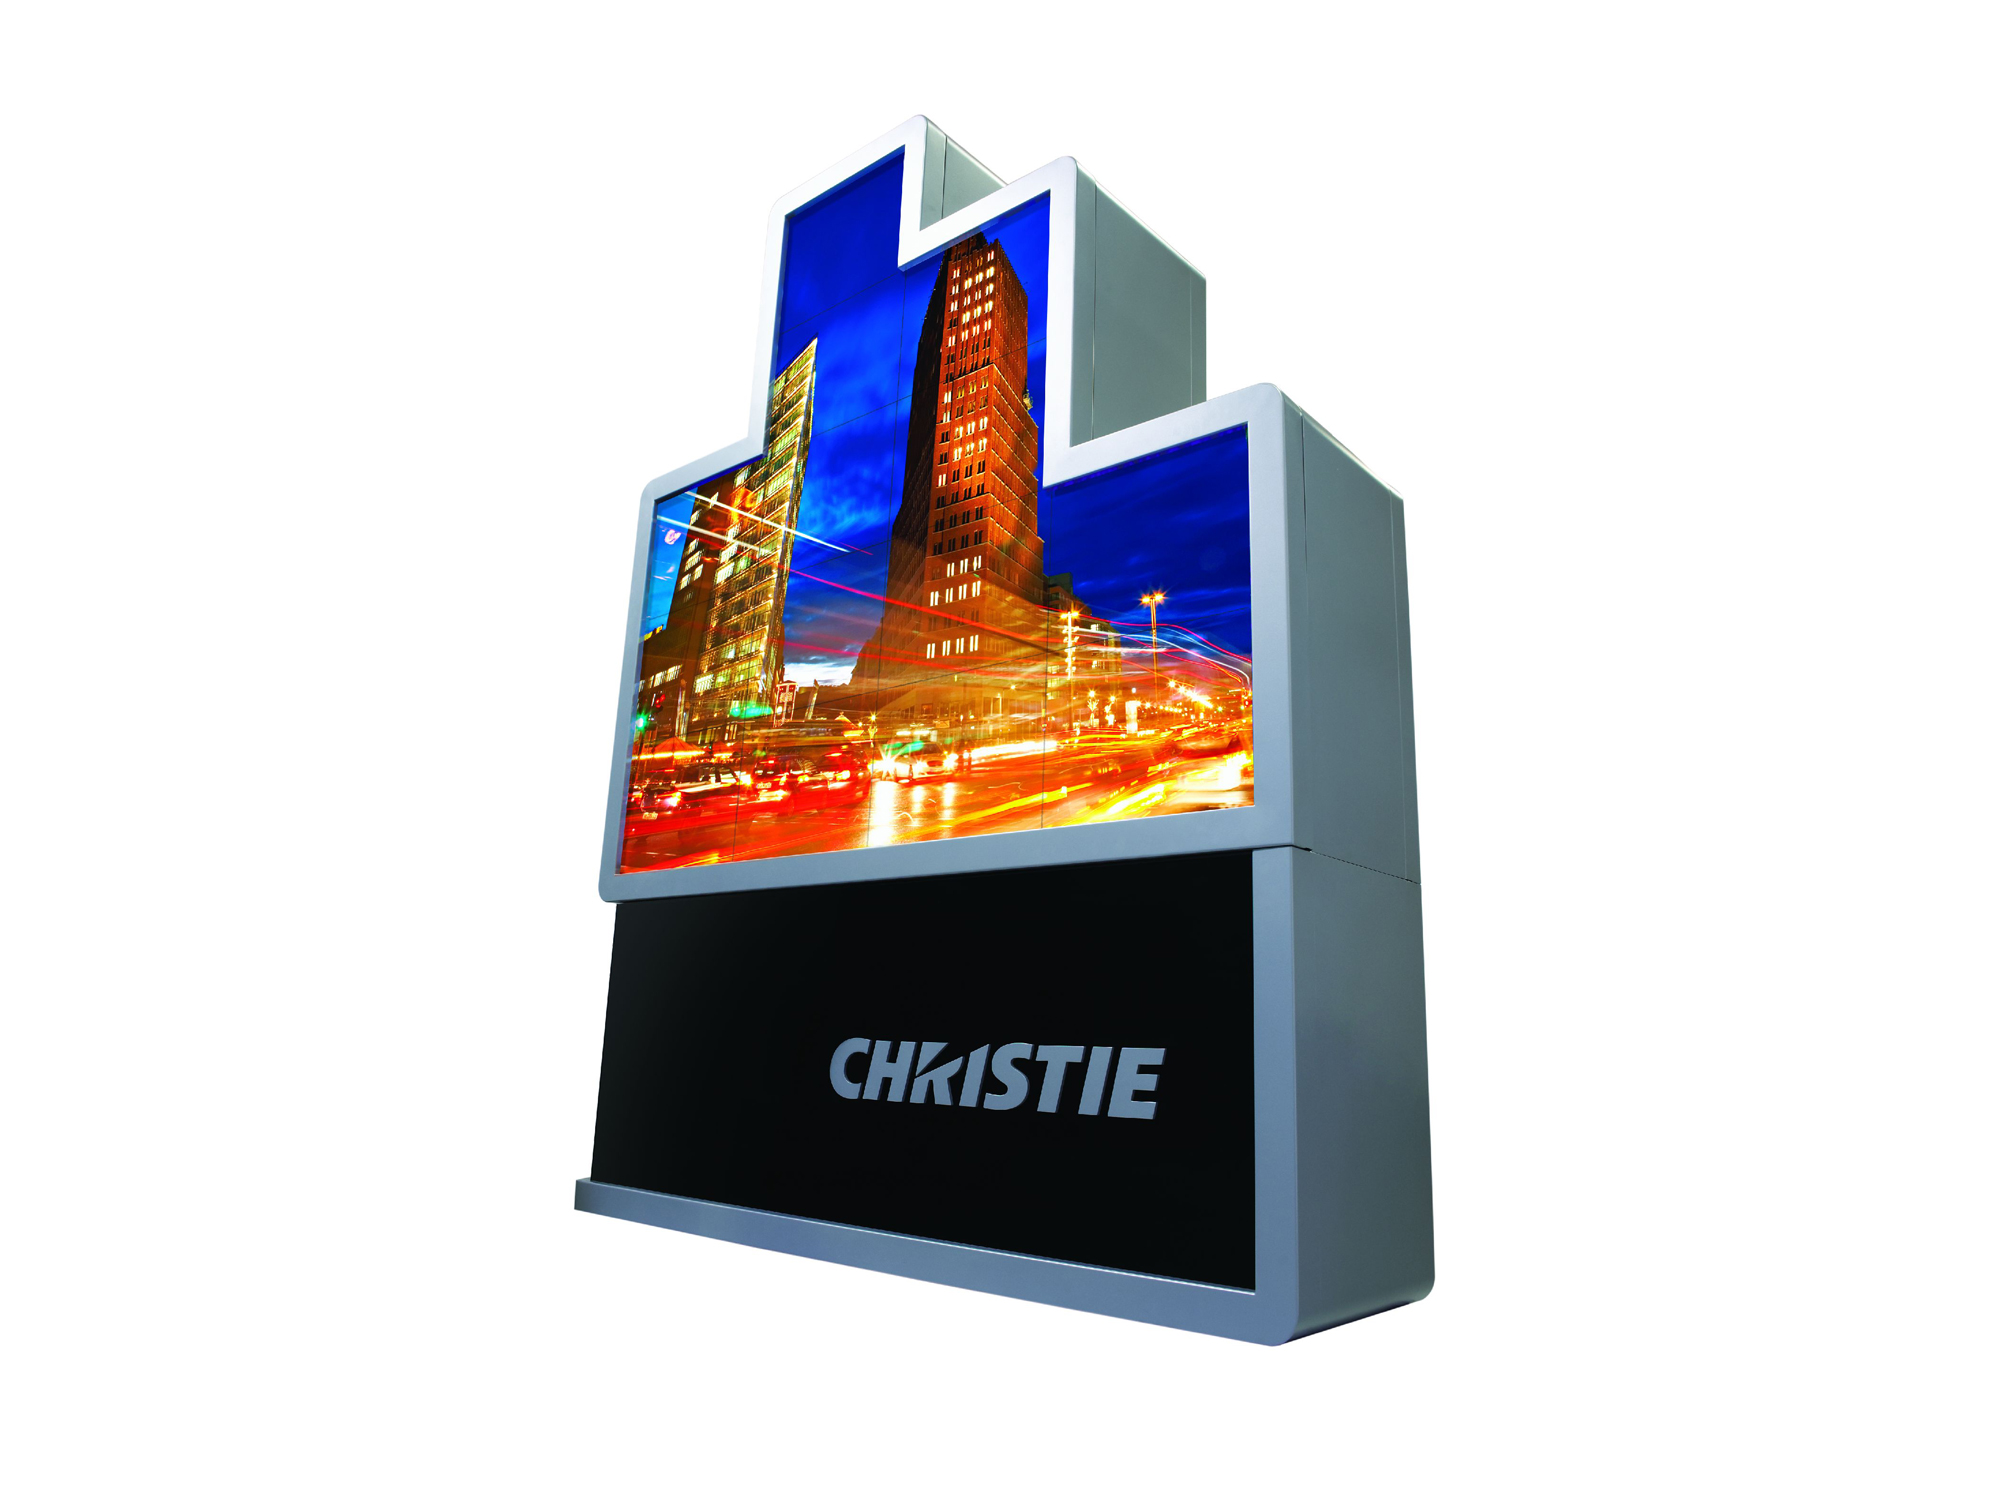 /globalassets/.catalog/products/images/microtiles/gallery/christie-microtiles-digital-signage-video-walls-image3.jpg